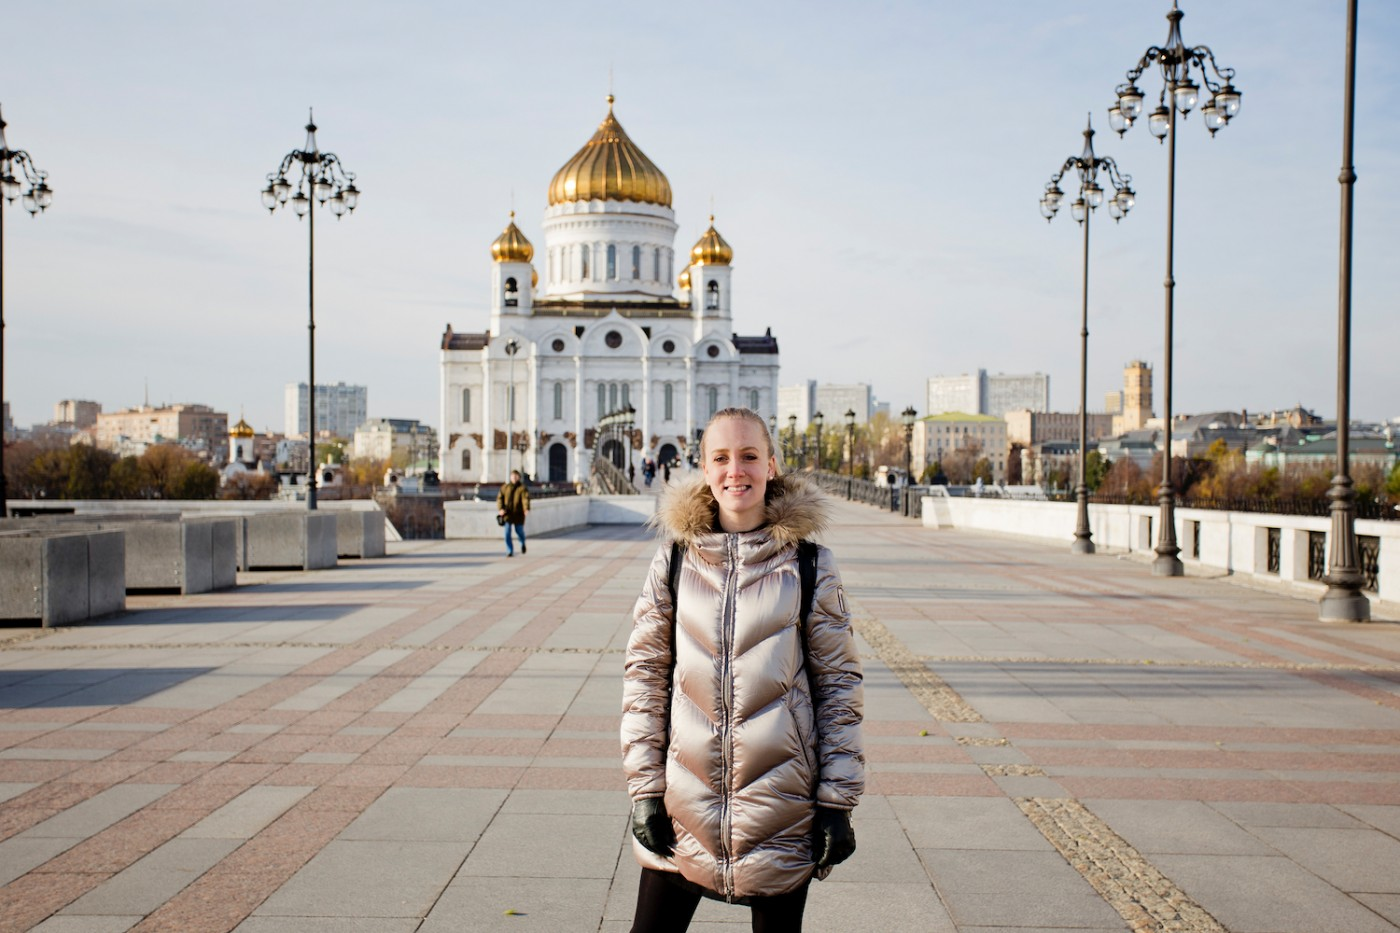 travel planning moscow _ moskau reisefacts _ moskau visum _ moscow visum _ moscow travelfacts